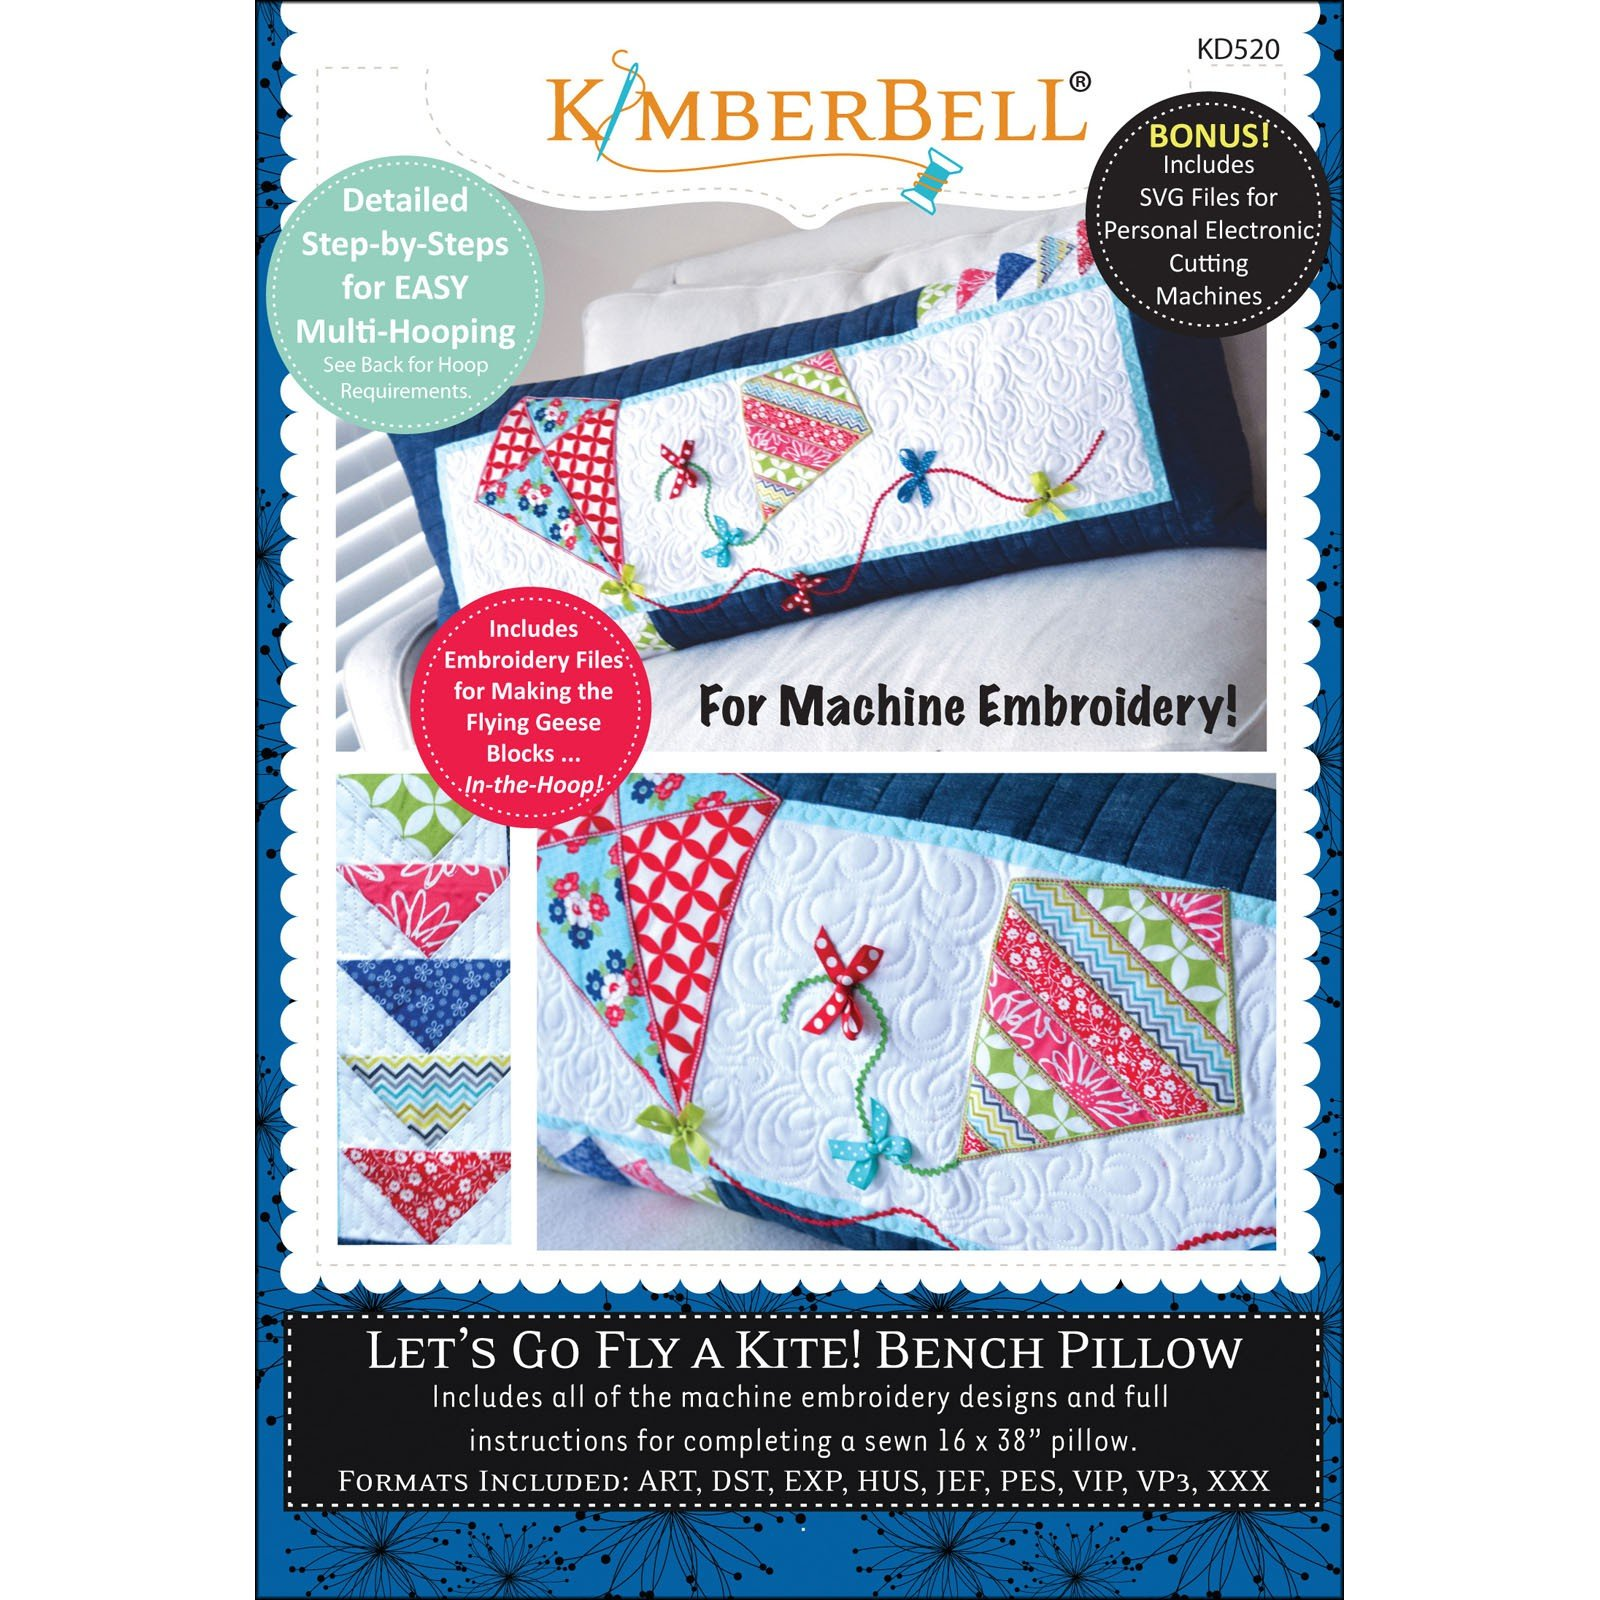 Let's Go Fly A Kite! Bench Pillow Kimberbell Embroidery CD